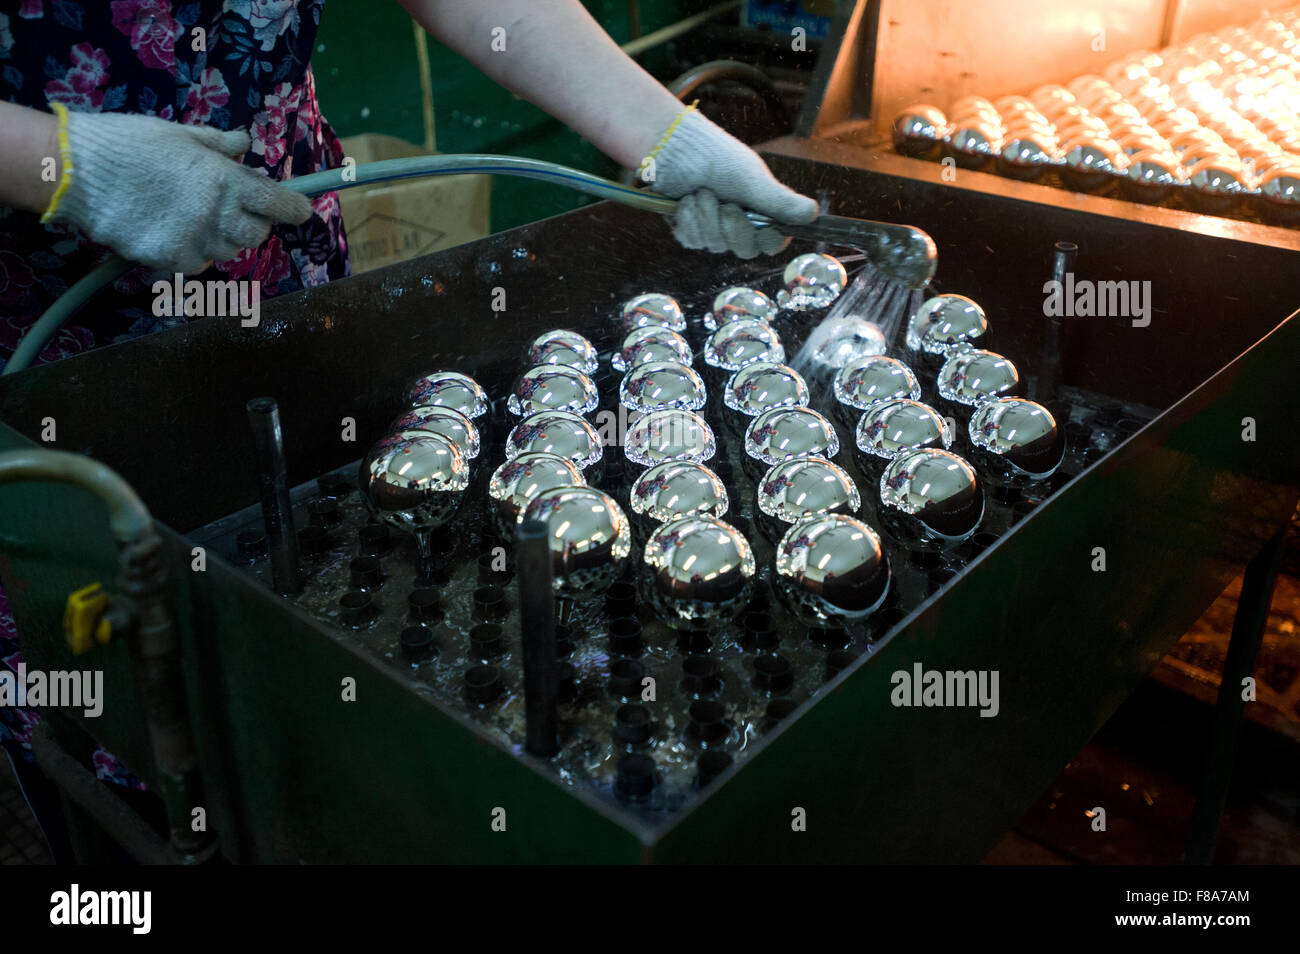 Piotrkow Trybunalski, Poland. 7th December, 2015. Worker washes silvered glass balls before placing them into drying - Stock Image